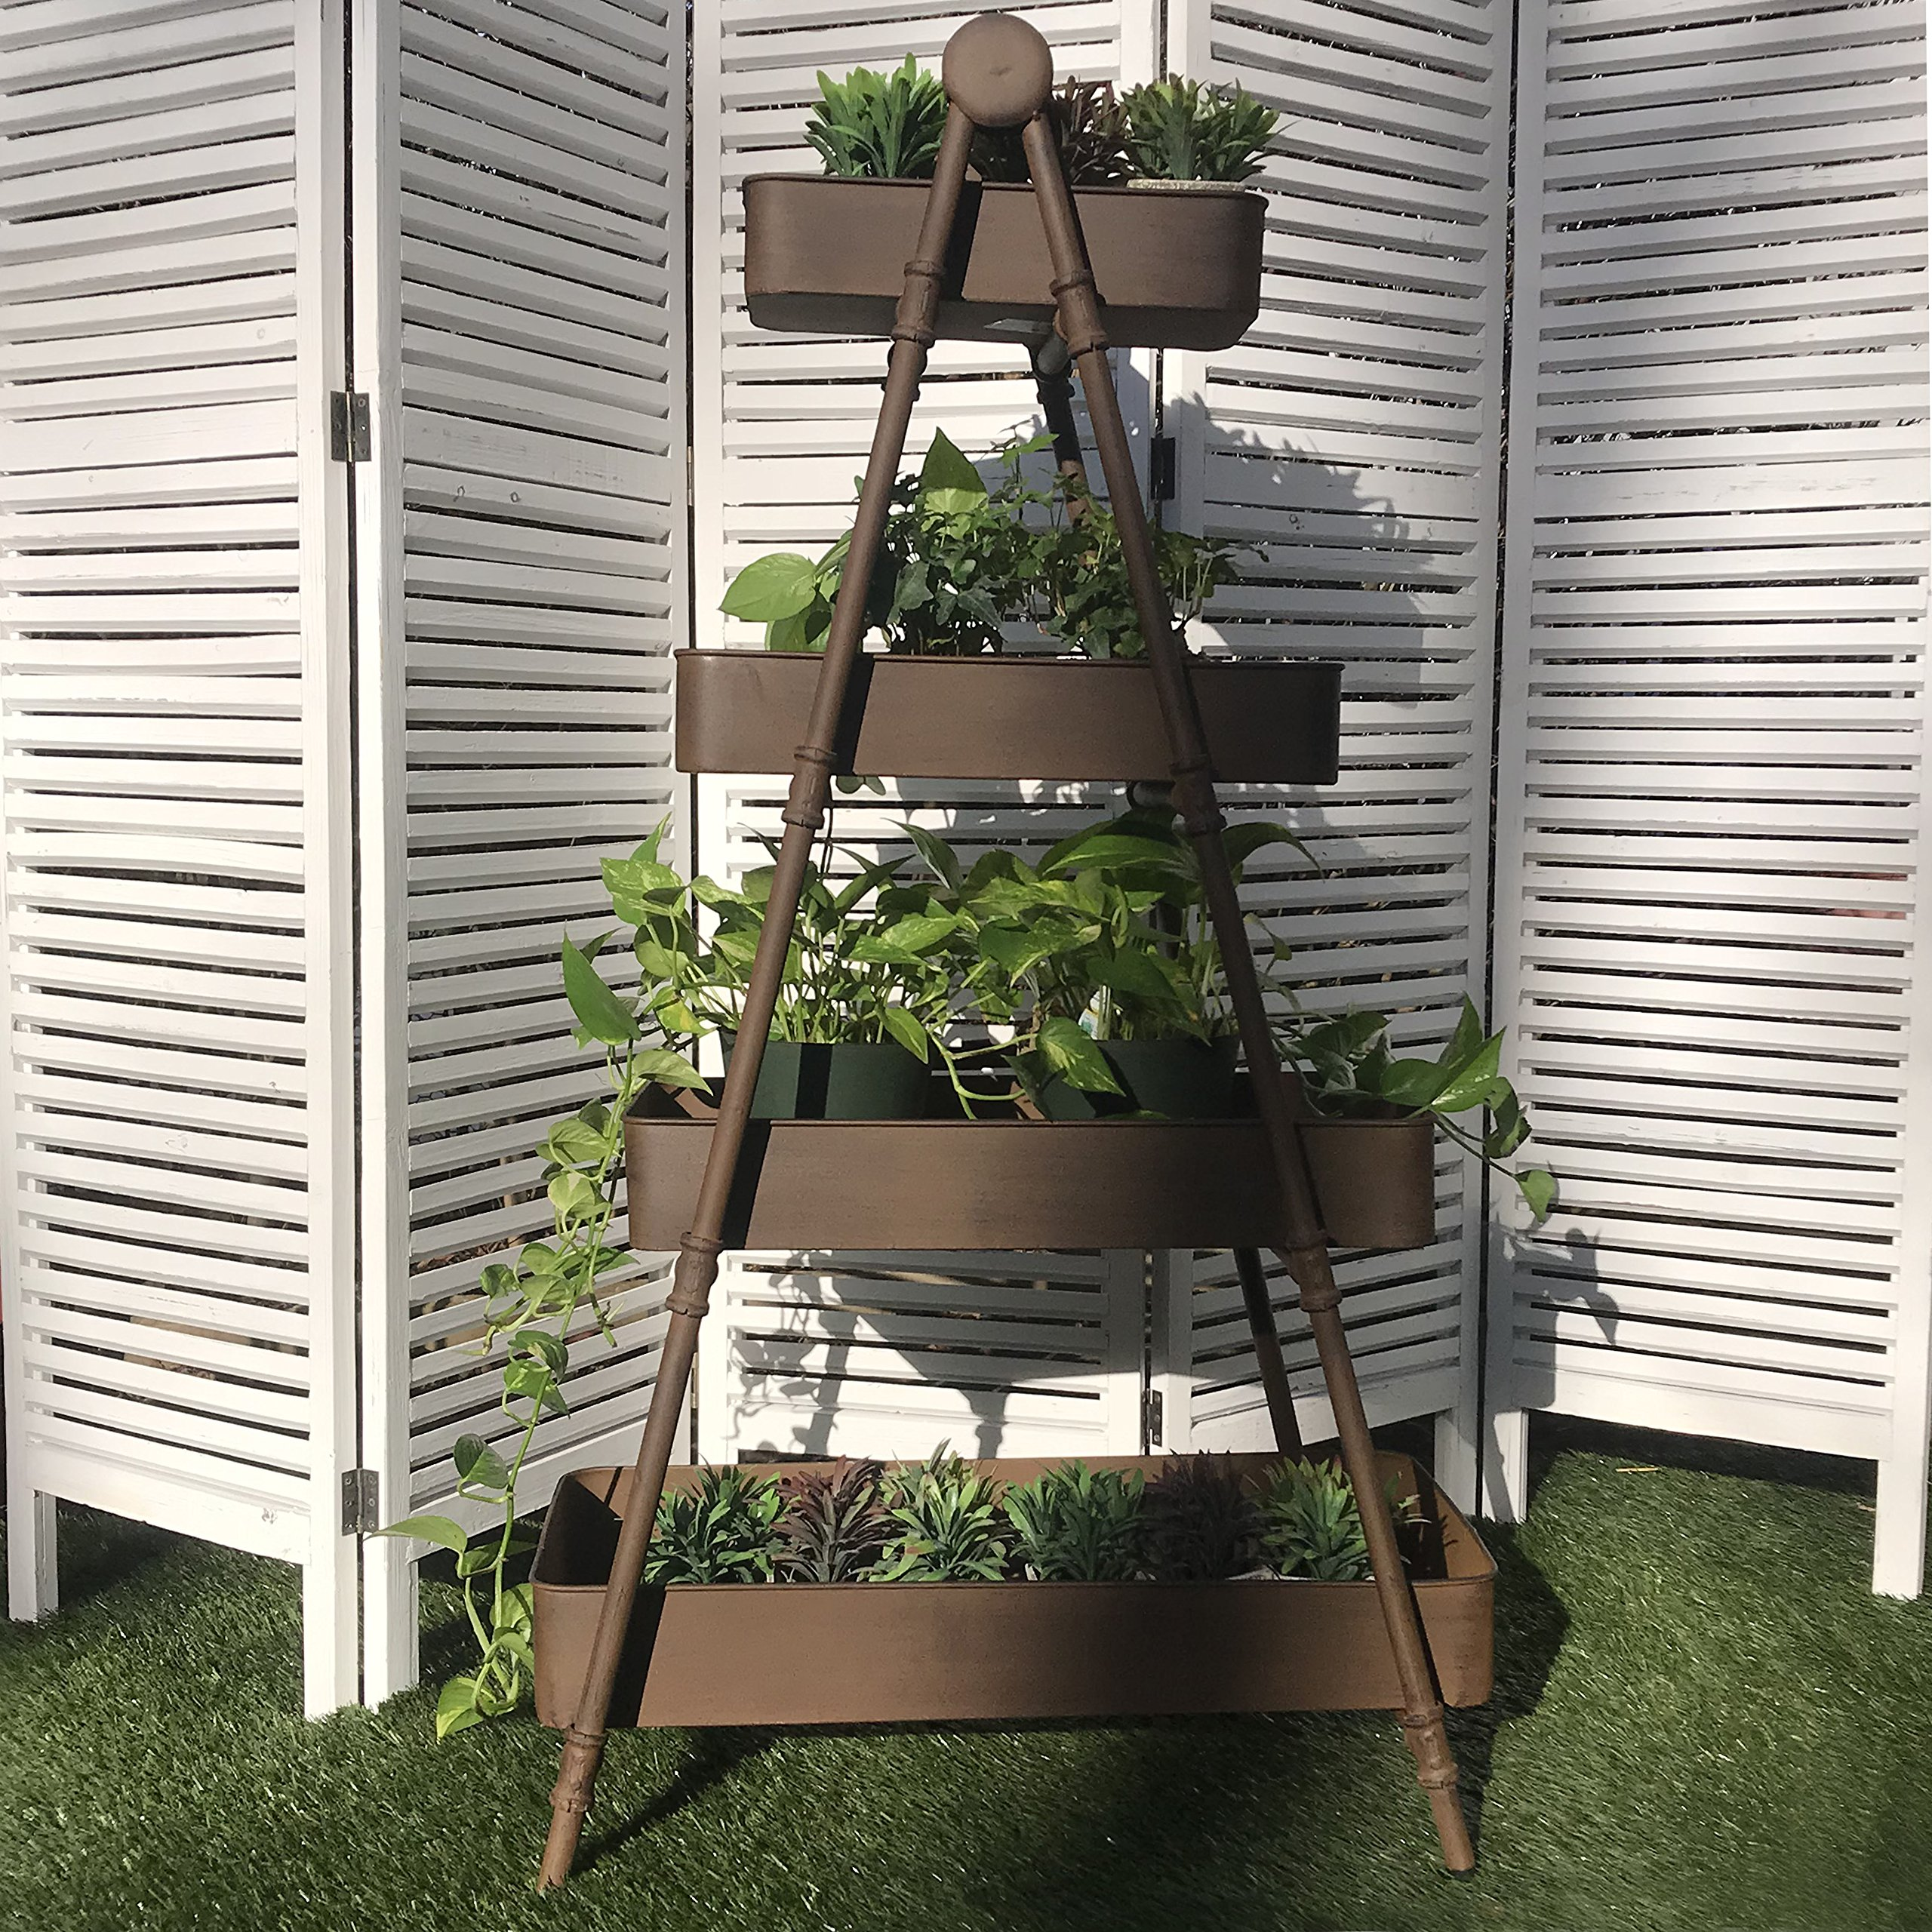 The Farmer's A-Frame Rack With 4 Removable Shelf Trays, Display Stand, Plants, Books Towels, Shoes, Vintage Rustic Style, Distressed, Sturdy Iron, Approx. 4 Ft Tall (47 Inches) By Whole House Worlds